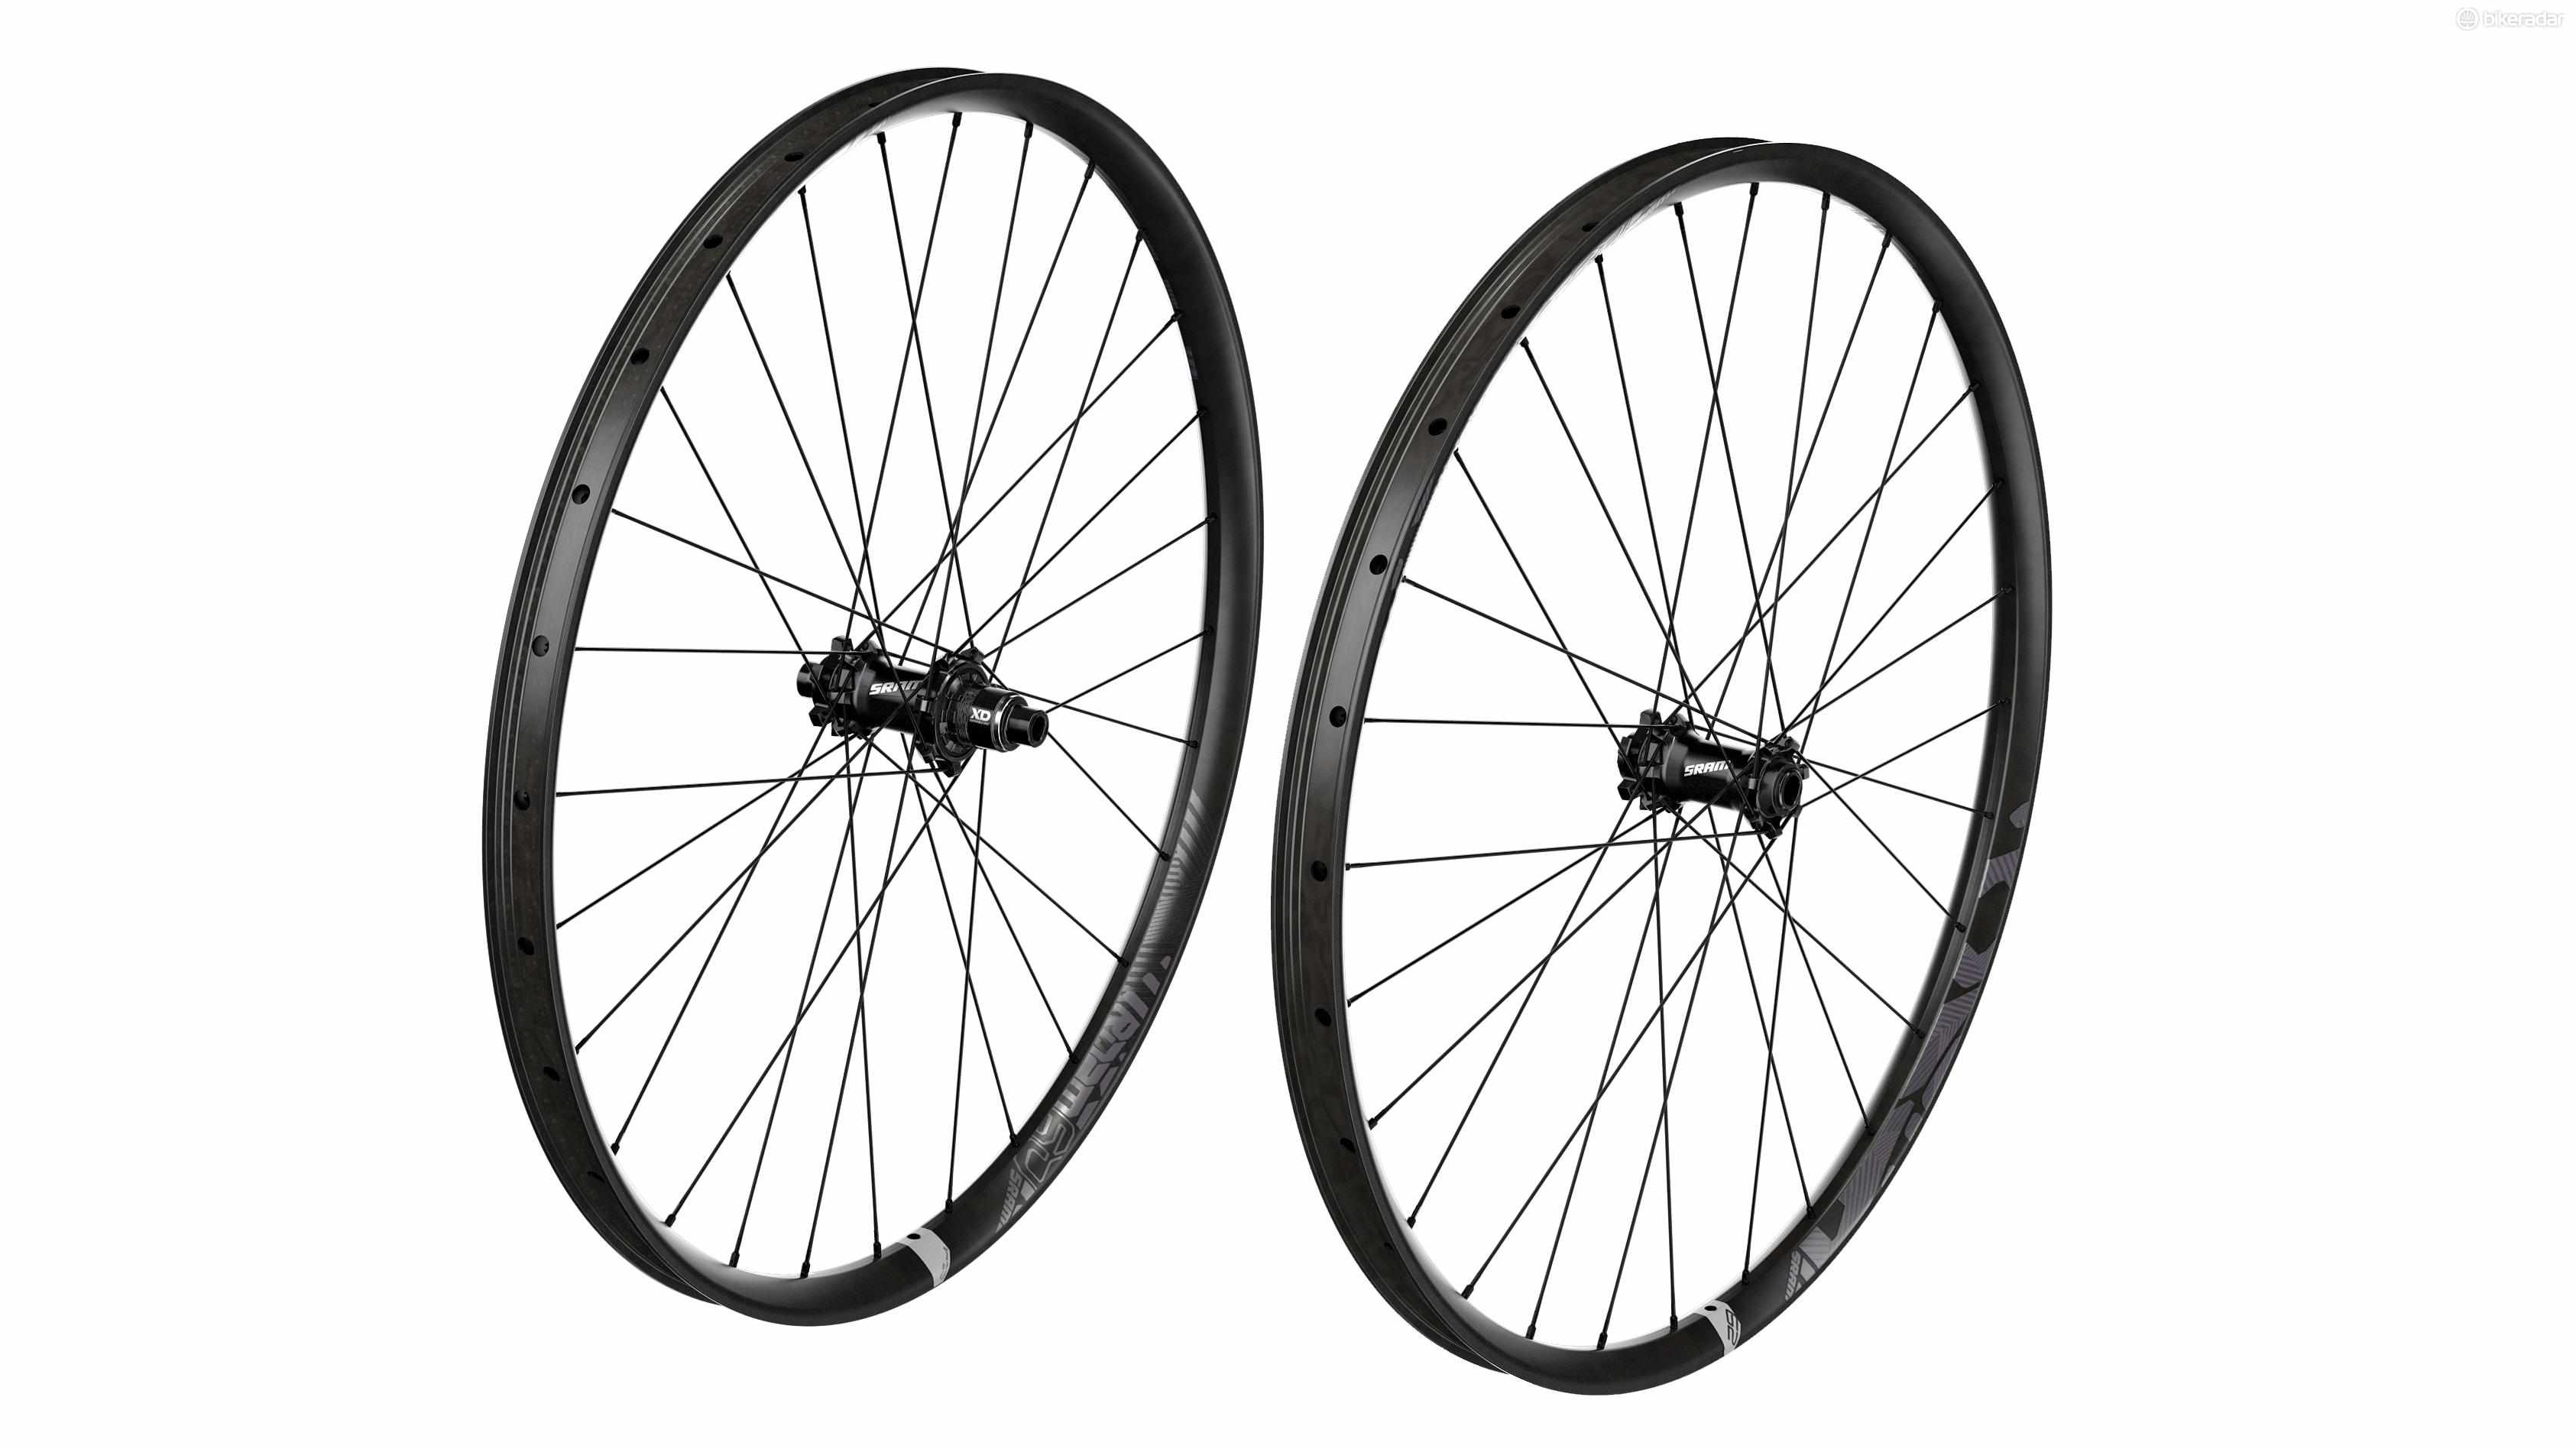 SRAM has taken the wide-rimmed carbon Rise 60 and given them the 29er treatment